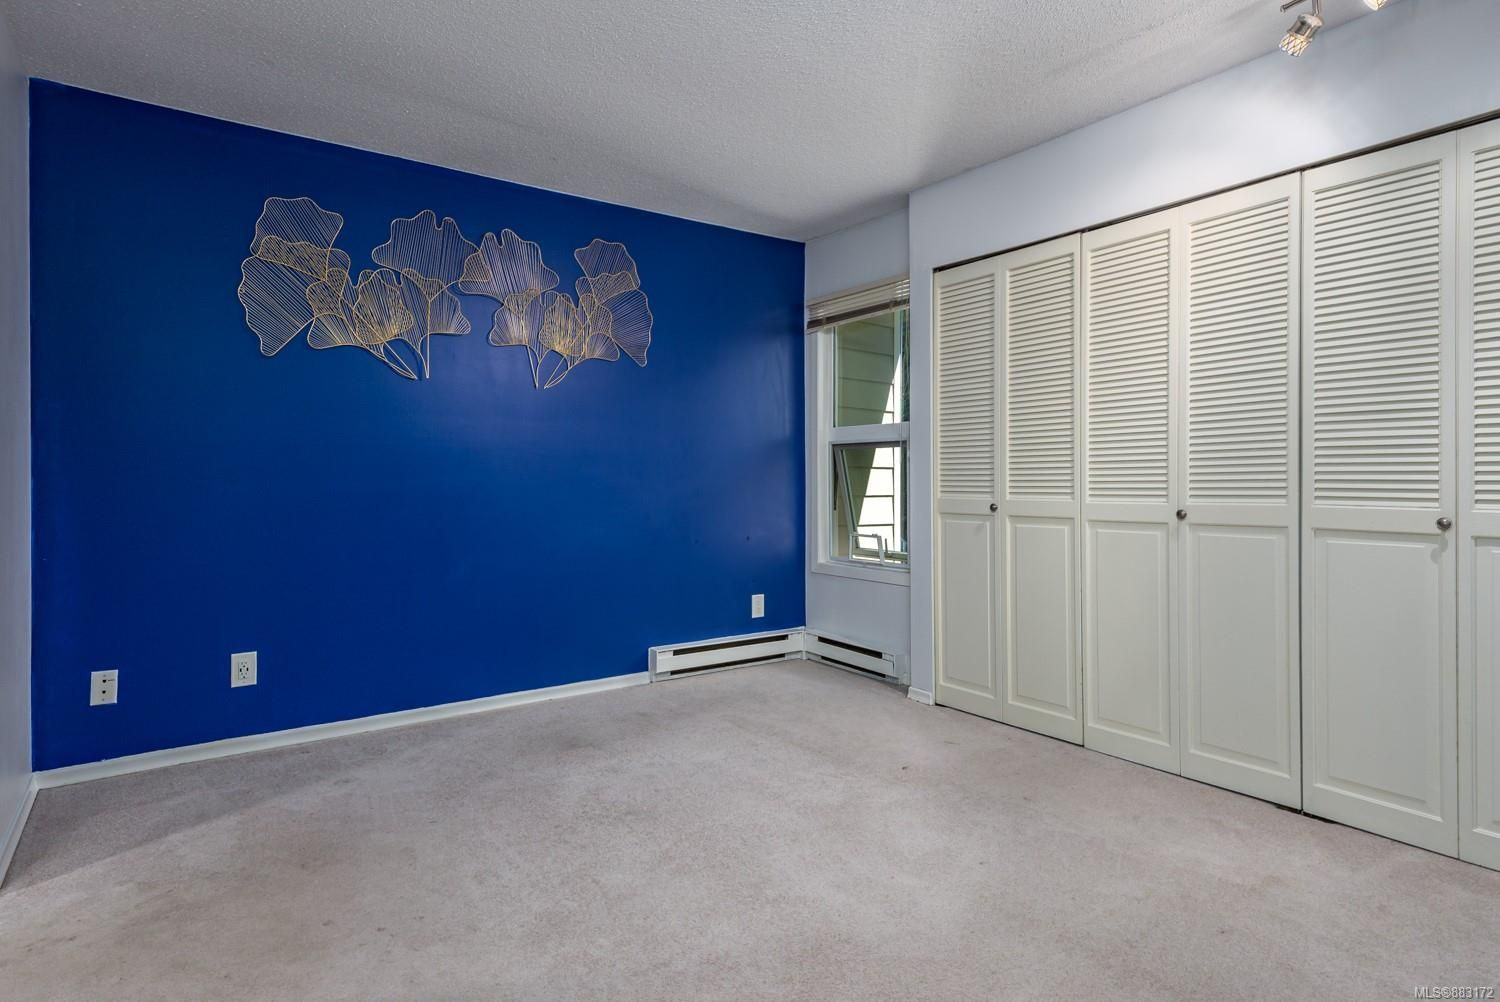 Photo 12: Photos: 303 205 1st St in : CV Courtenay City Row/Townhouse for sale (Comox Valley)  : MLS®# 883172